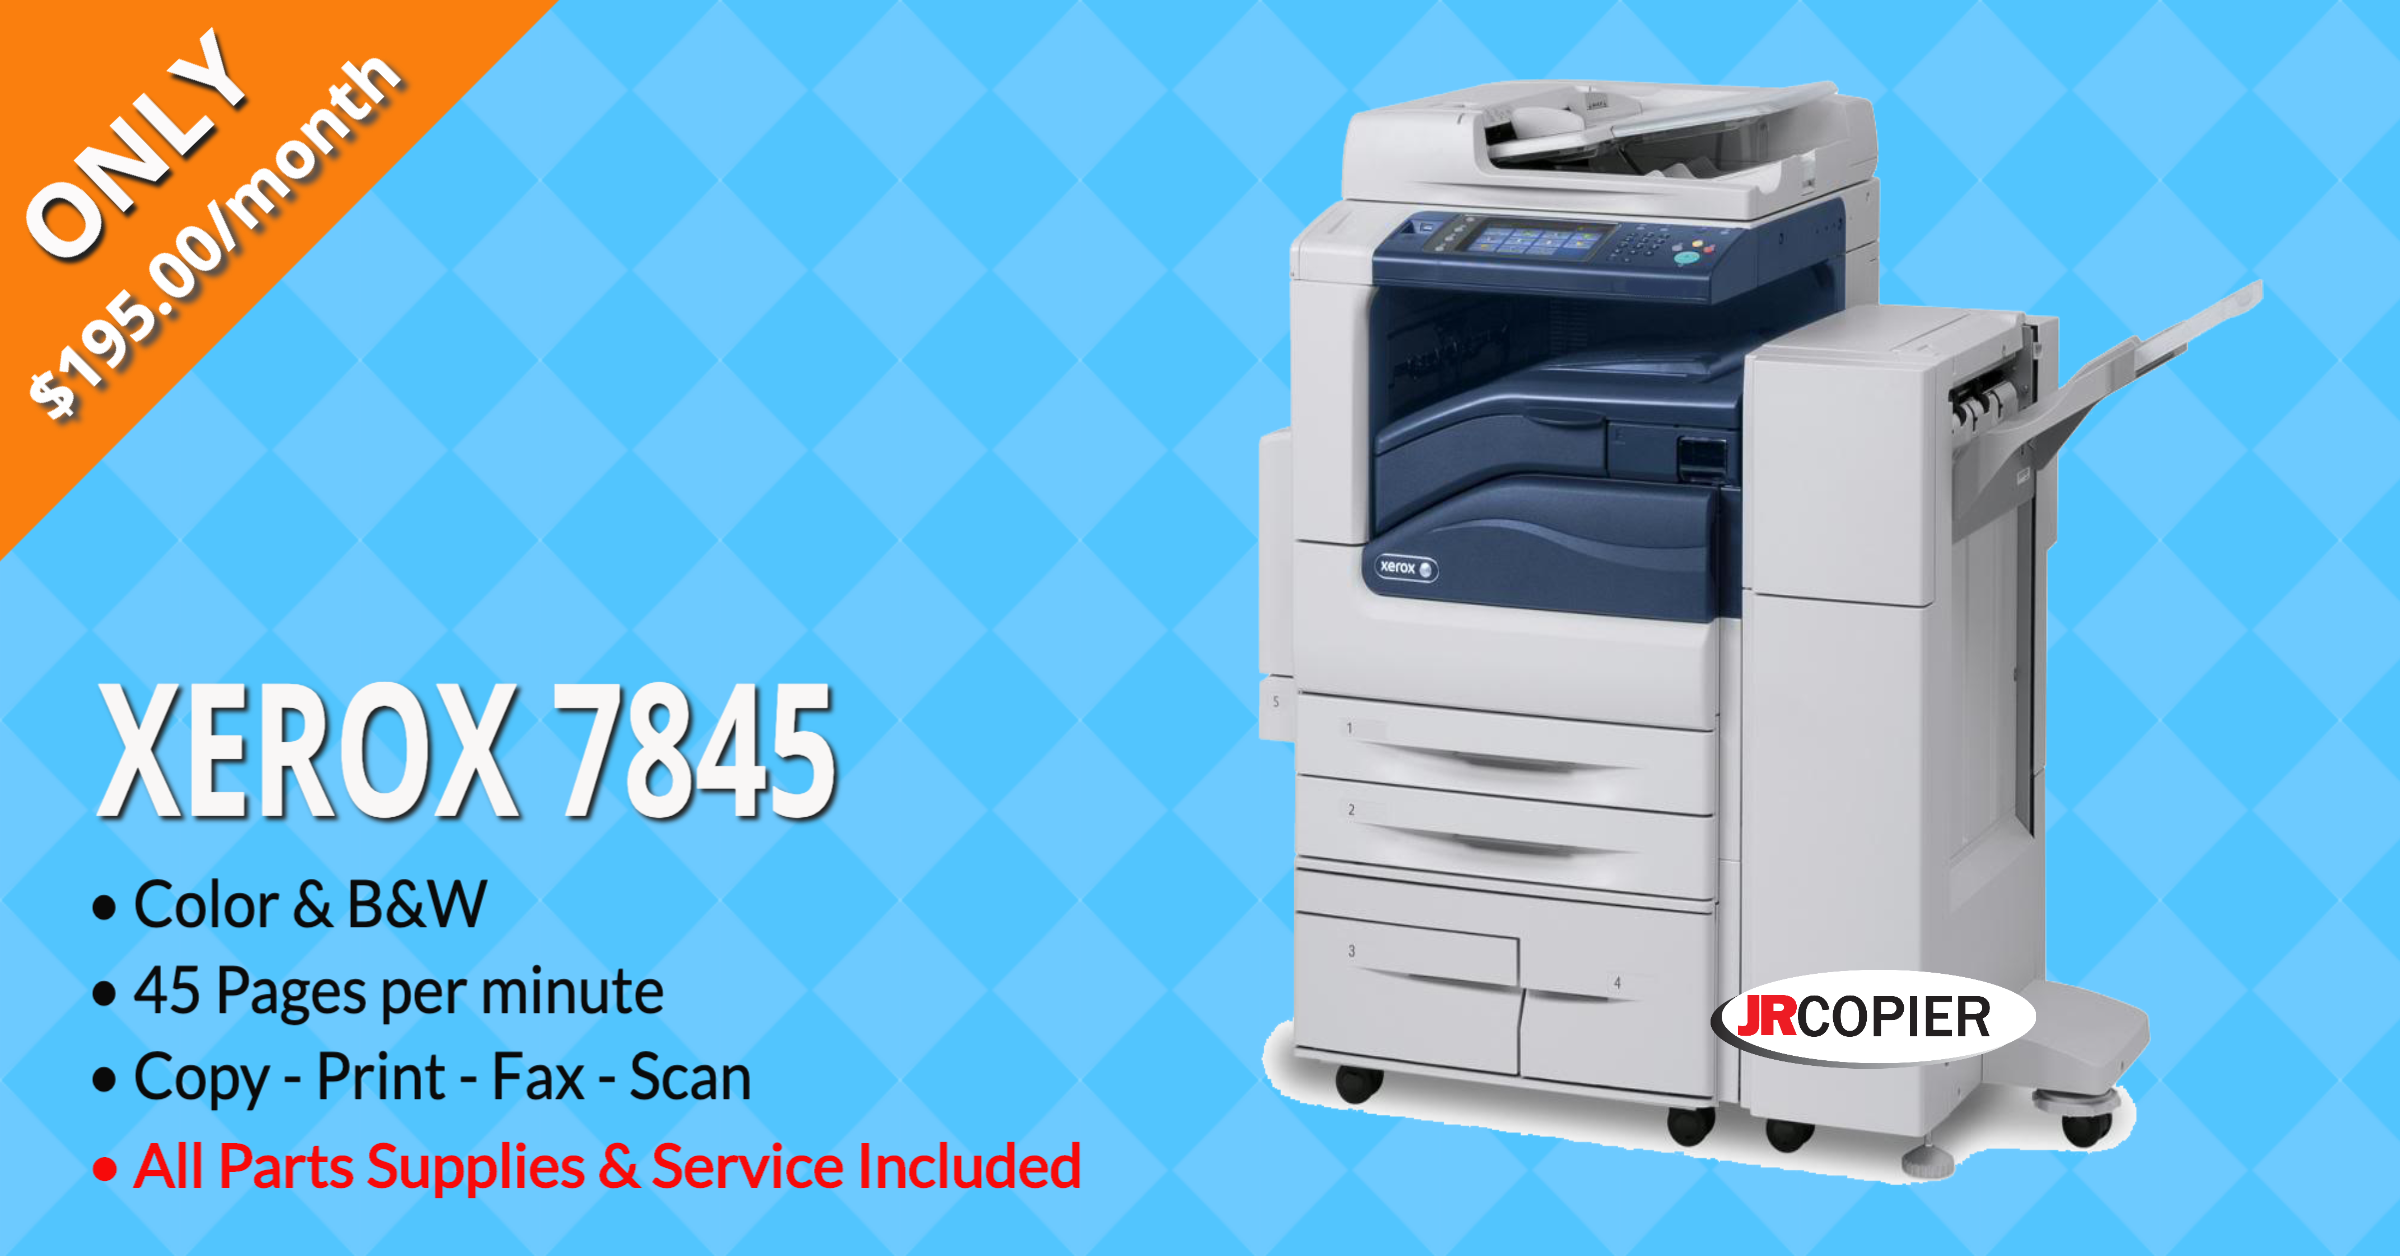 Copy Machine 80022, 80037, 80216, 80601, 80603, 80640